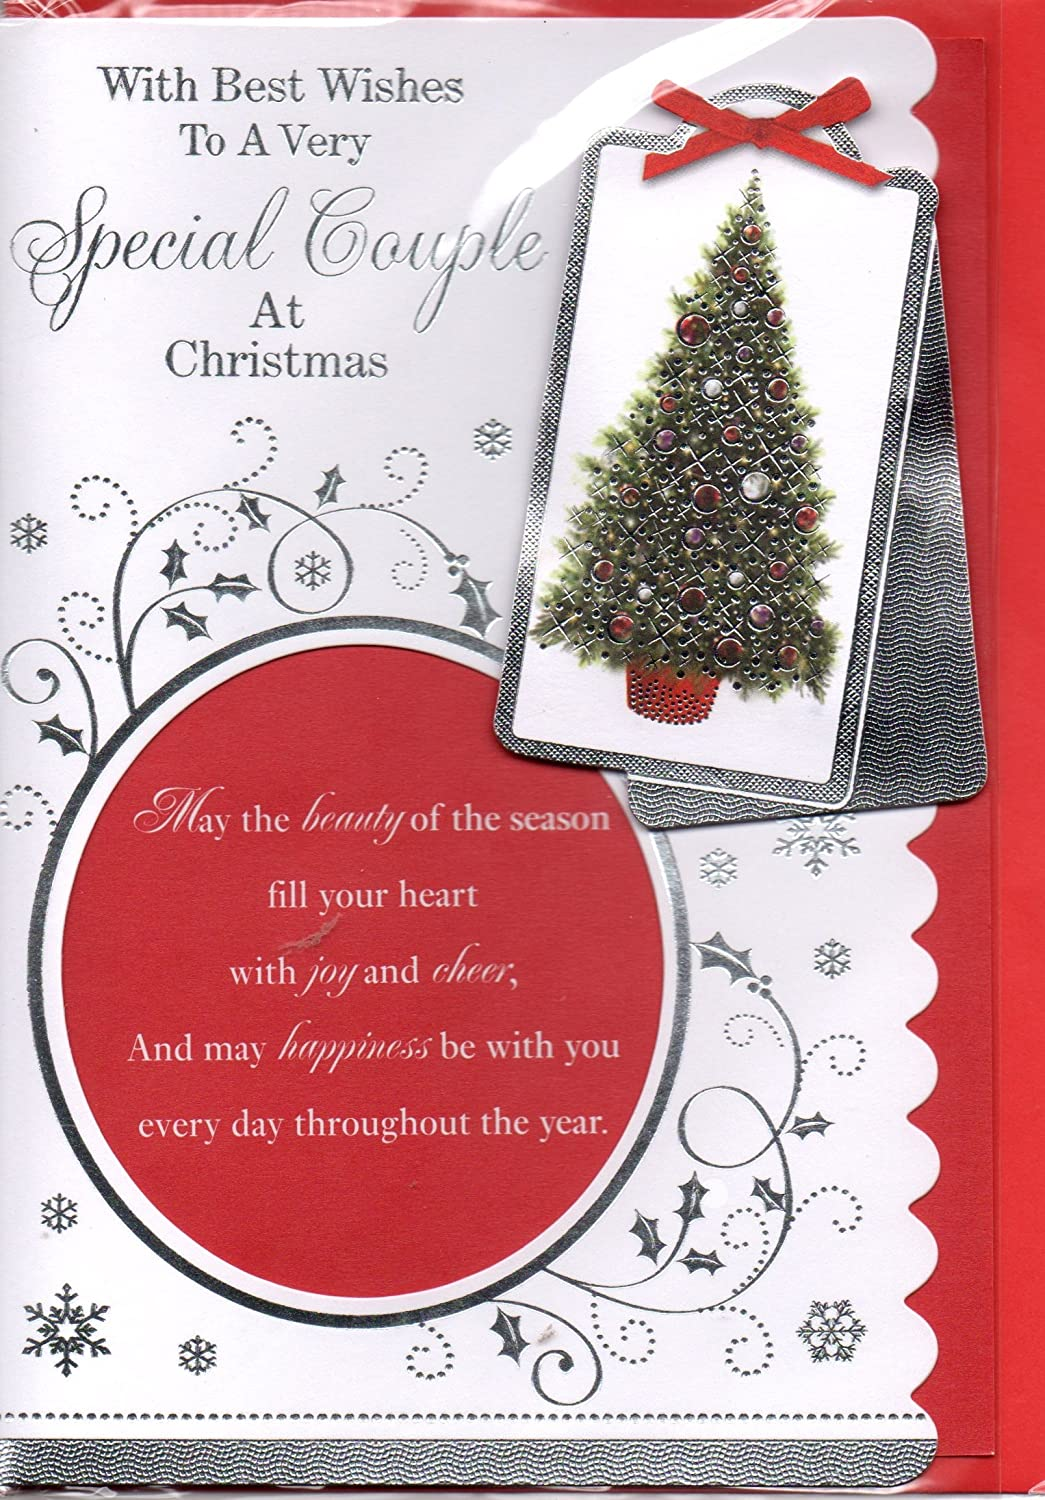 Special Couple Christmas Card With Best Wishes To A Very Special